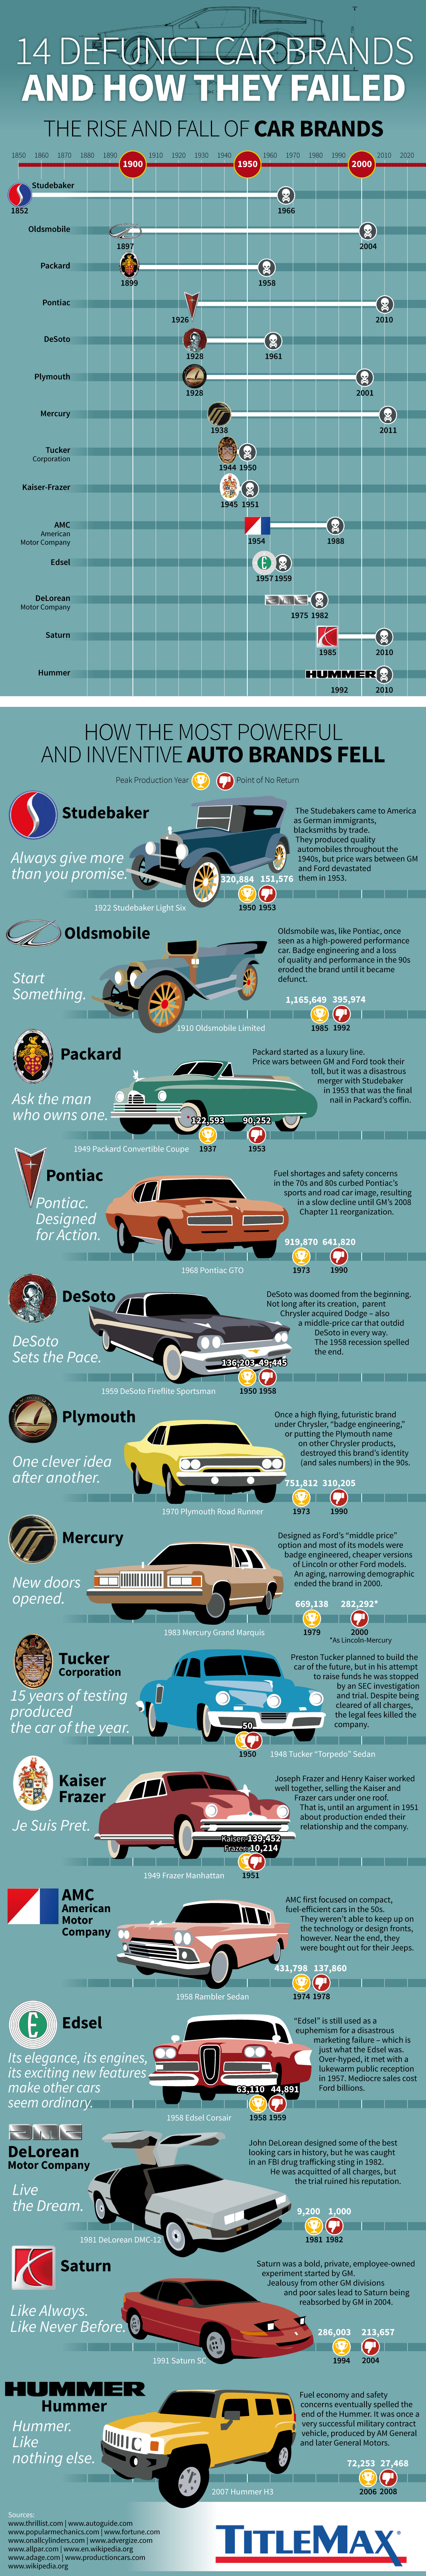 Car Brands That Died